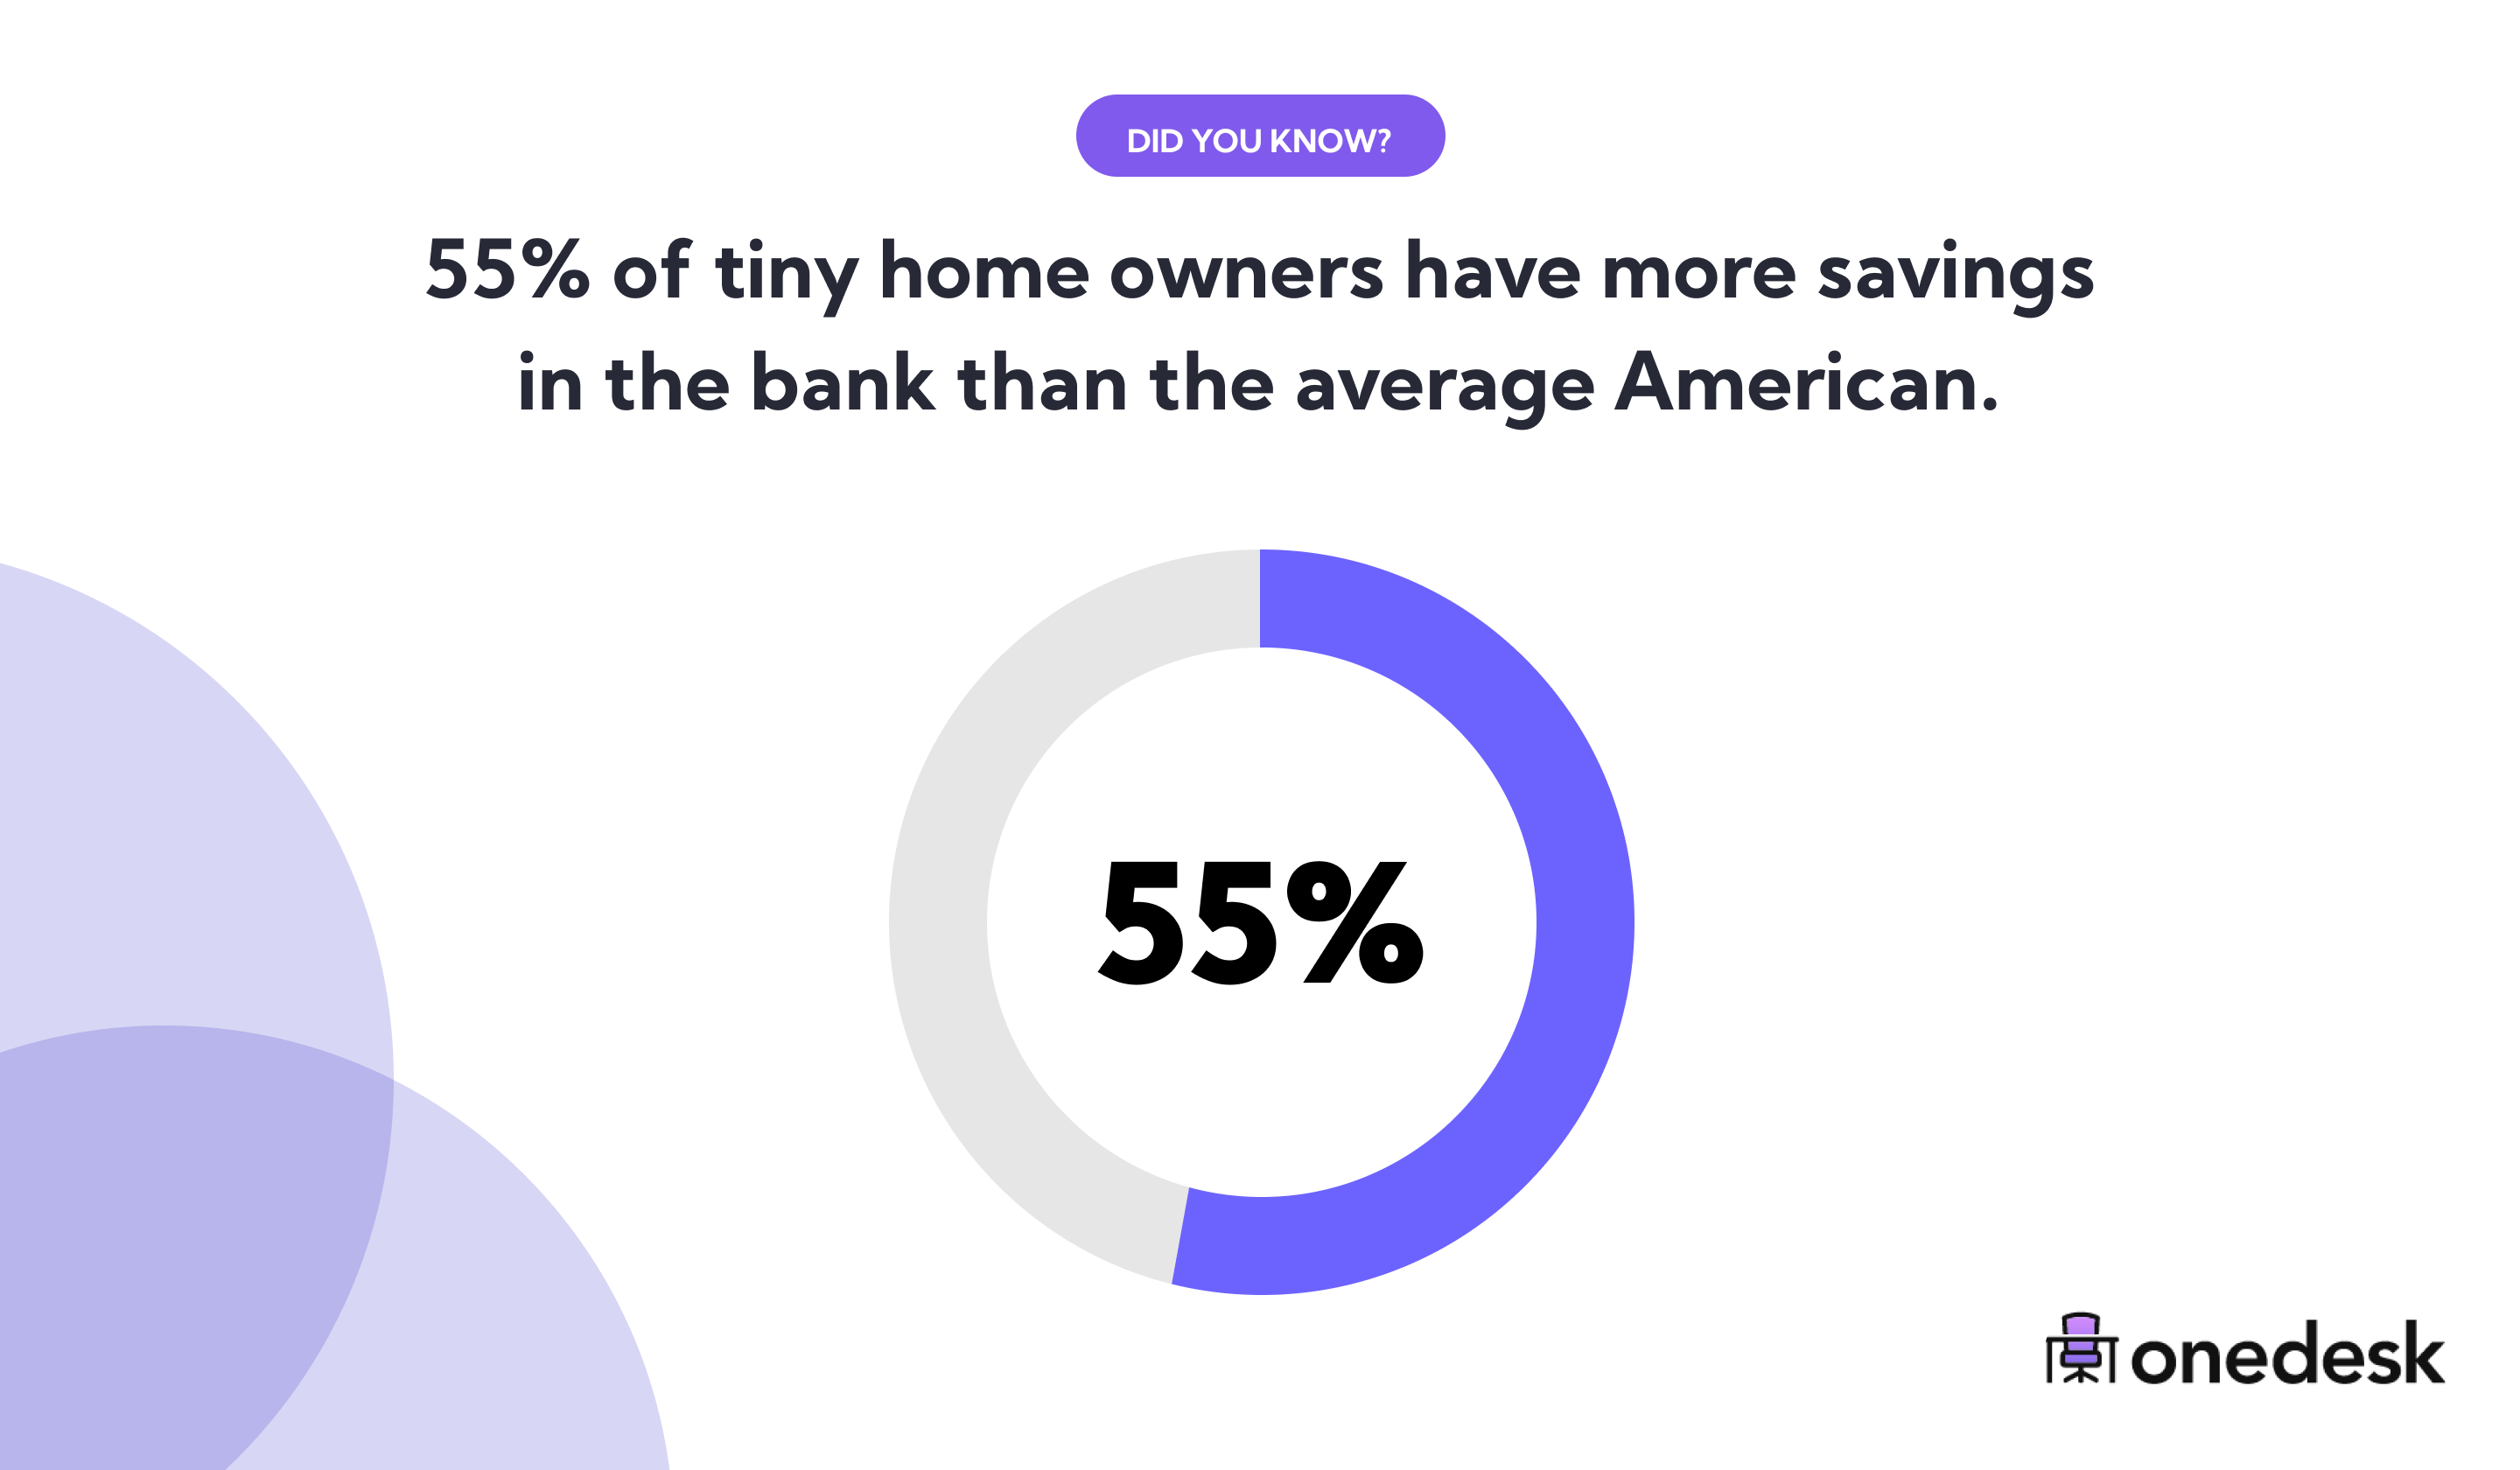 tiny home owners have more bank savings